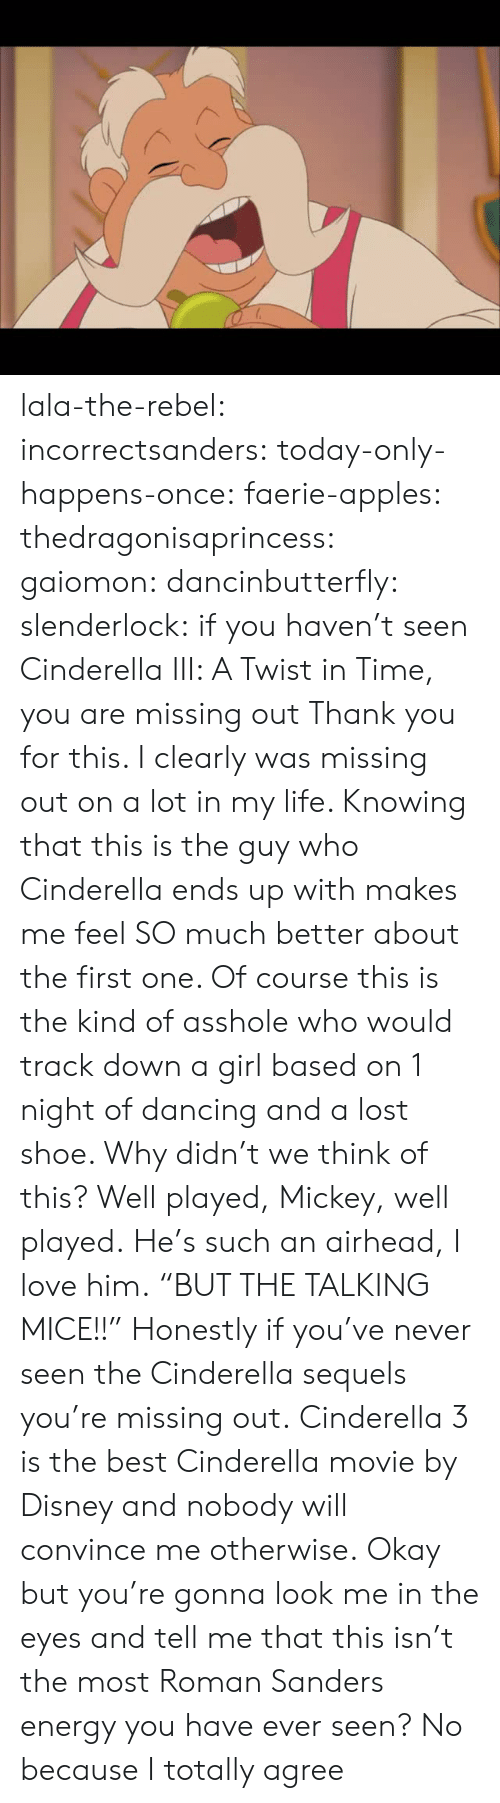 "Cinderella , Dancing, and Disney: lala-the-rebel:  incorrectsanders:   today-only-happens-once:   faerie-apples:  thedragonisaprincess:  gaiomon:  dancinbutterfly:  slenderlock: if you haven't seen Cinderella III: A Twist in Time, you are missing out Thank you for this. I clearly was missing out on a lot in my life. Knowing that this is the guy who Cinderella ends up with makes me feel SO much better about the first one. Of course this is the kind of asshole who would track down a girl based on 1 night of dancing and a lost shoe. Why didn't we think of this? Well played, Mickey, well played.  He's such an airhead, I love him.  ""BUT THE TALKING MICE!!""  Honestly if you've never seen the Cinderella sequels you're missing out.  Cinderella 3 is the best Cinderella movie by Disney and nobody will convince me otherwise.   Okay but you're gonna look me in the eyes and tell me that this isn't the most Roman Sanders energy you have ever seen?    No because I totally agree"